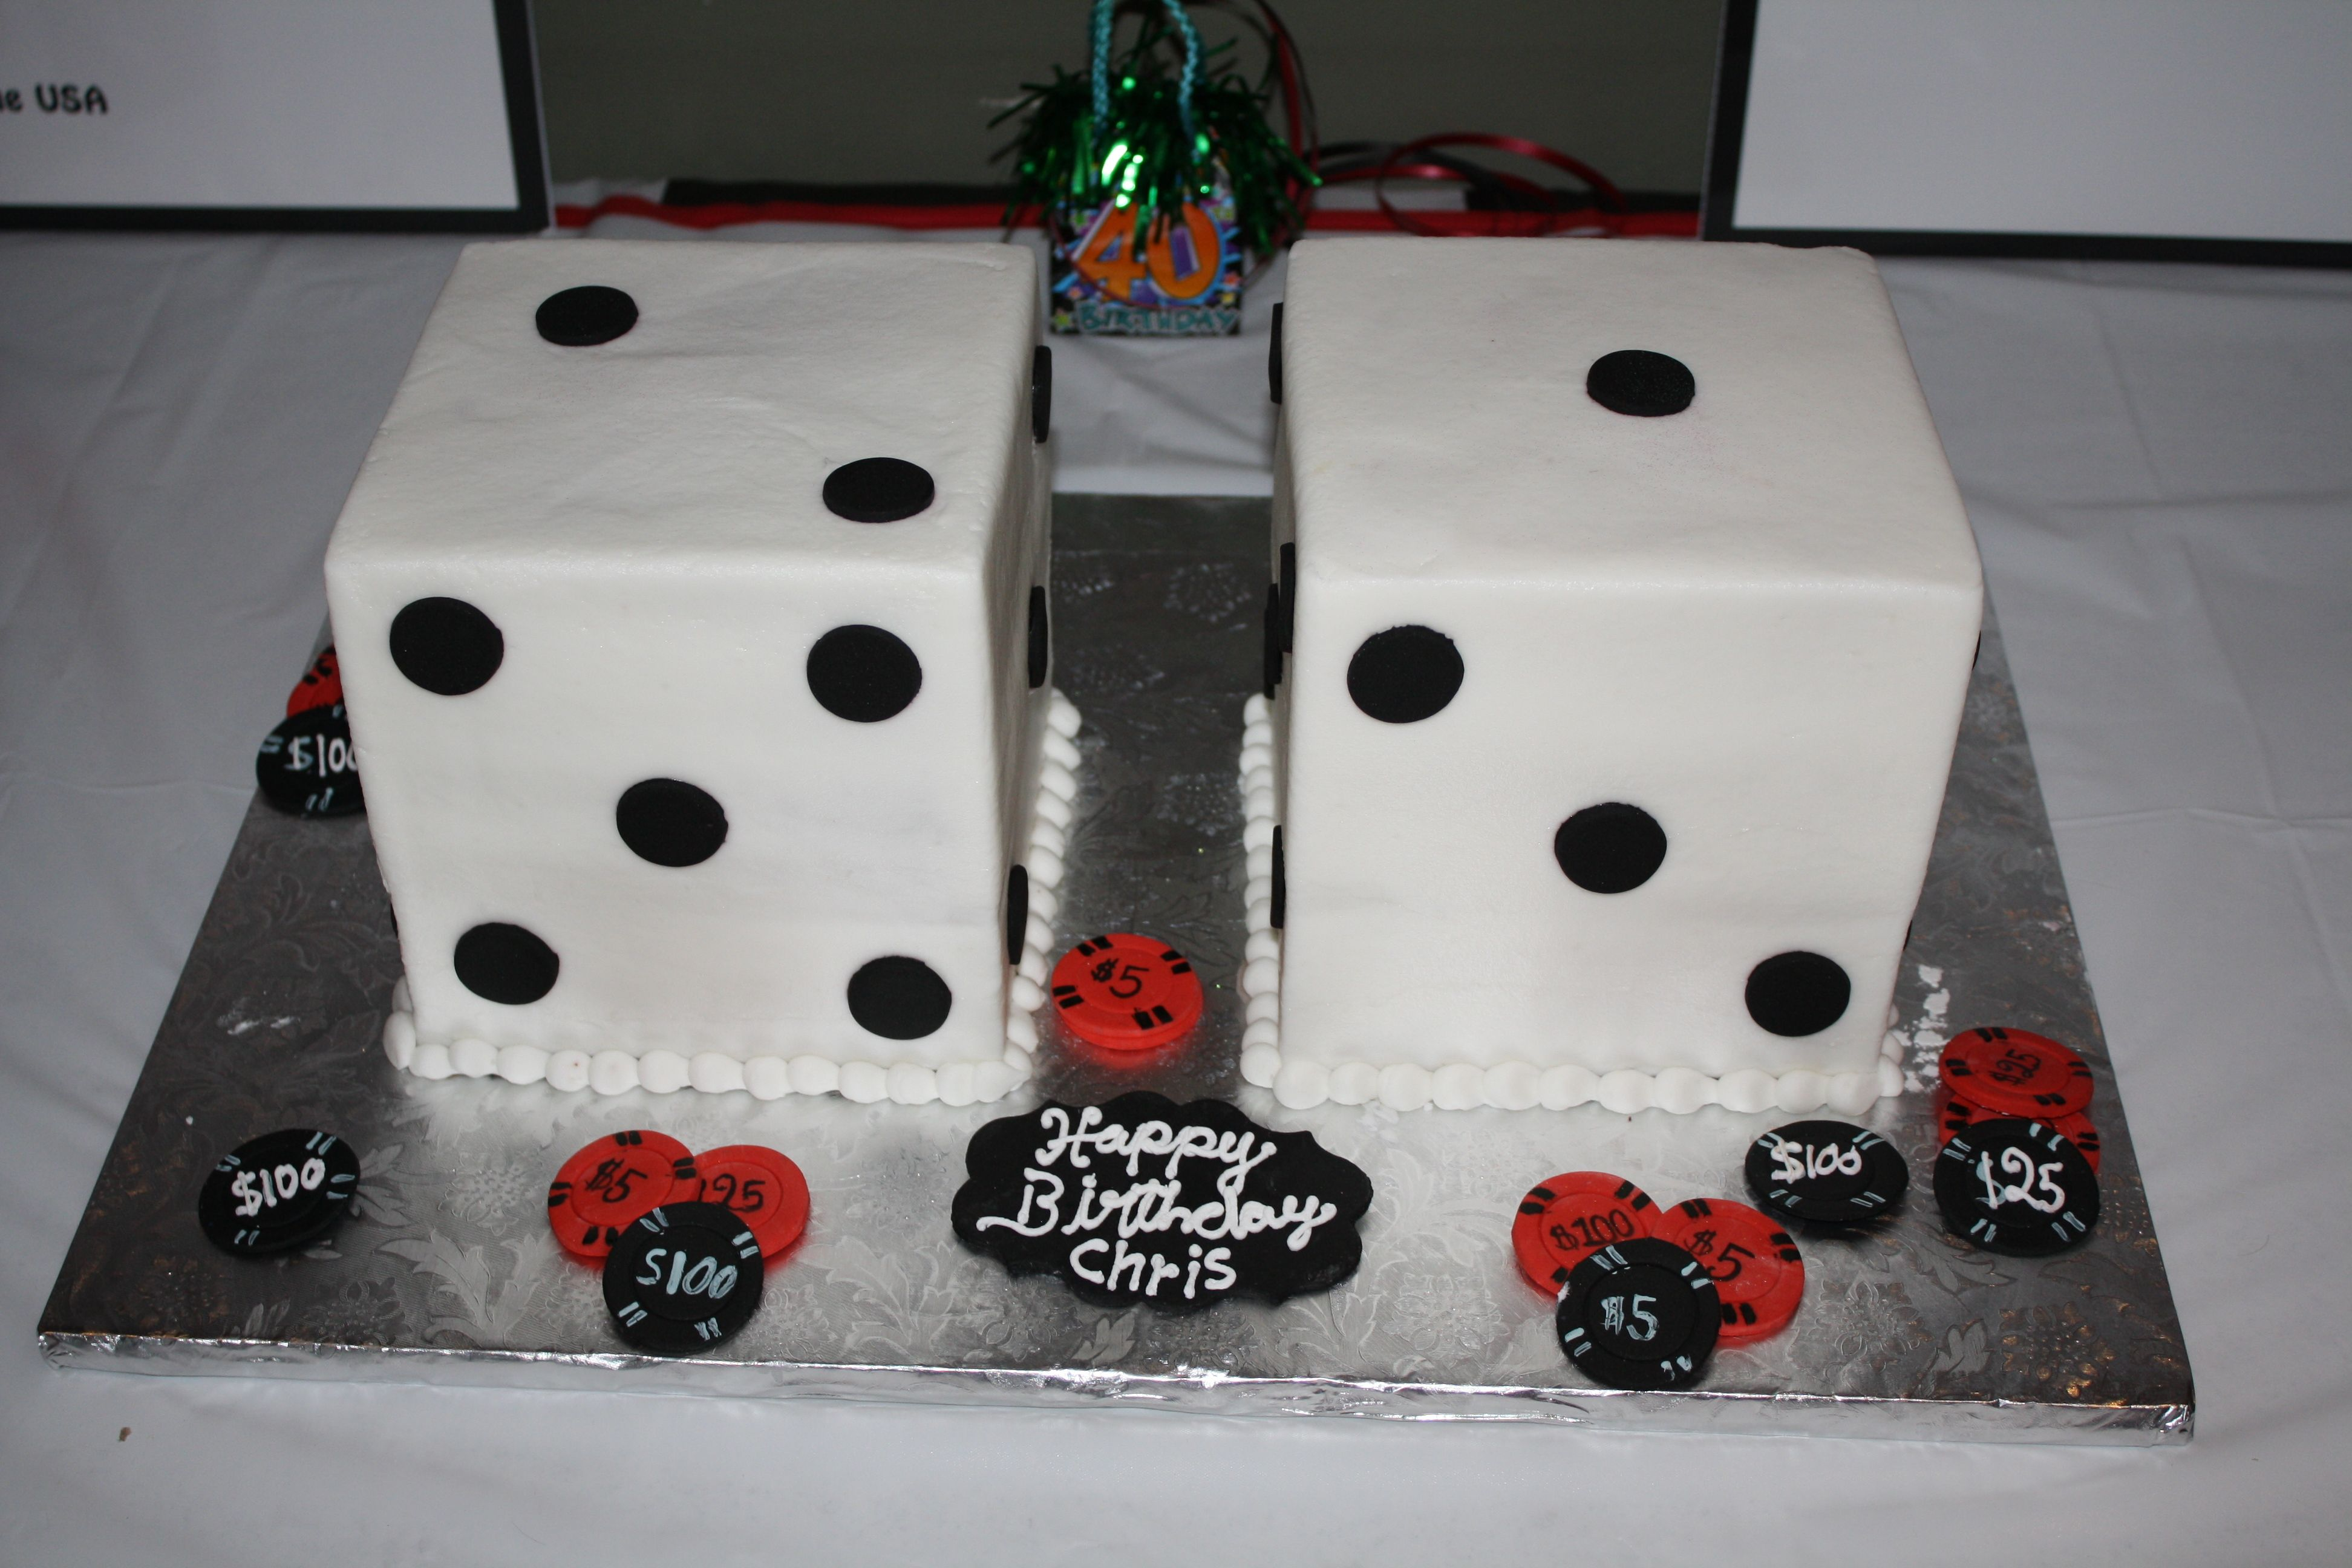 Casino Party Cake Who Made The In Houston TX SO YUMMY TOO